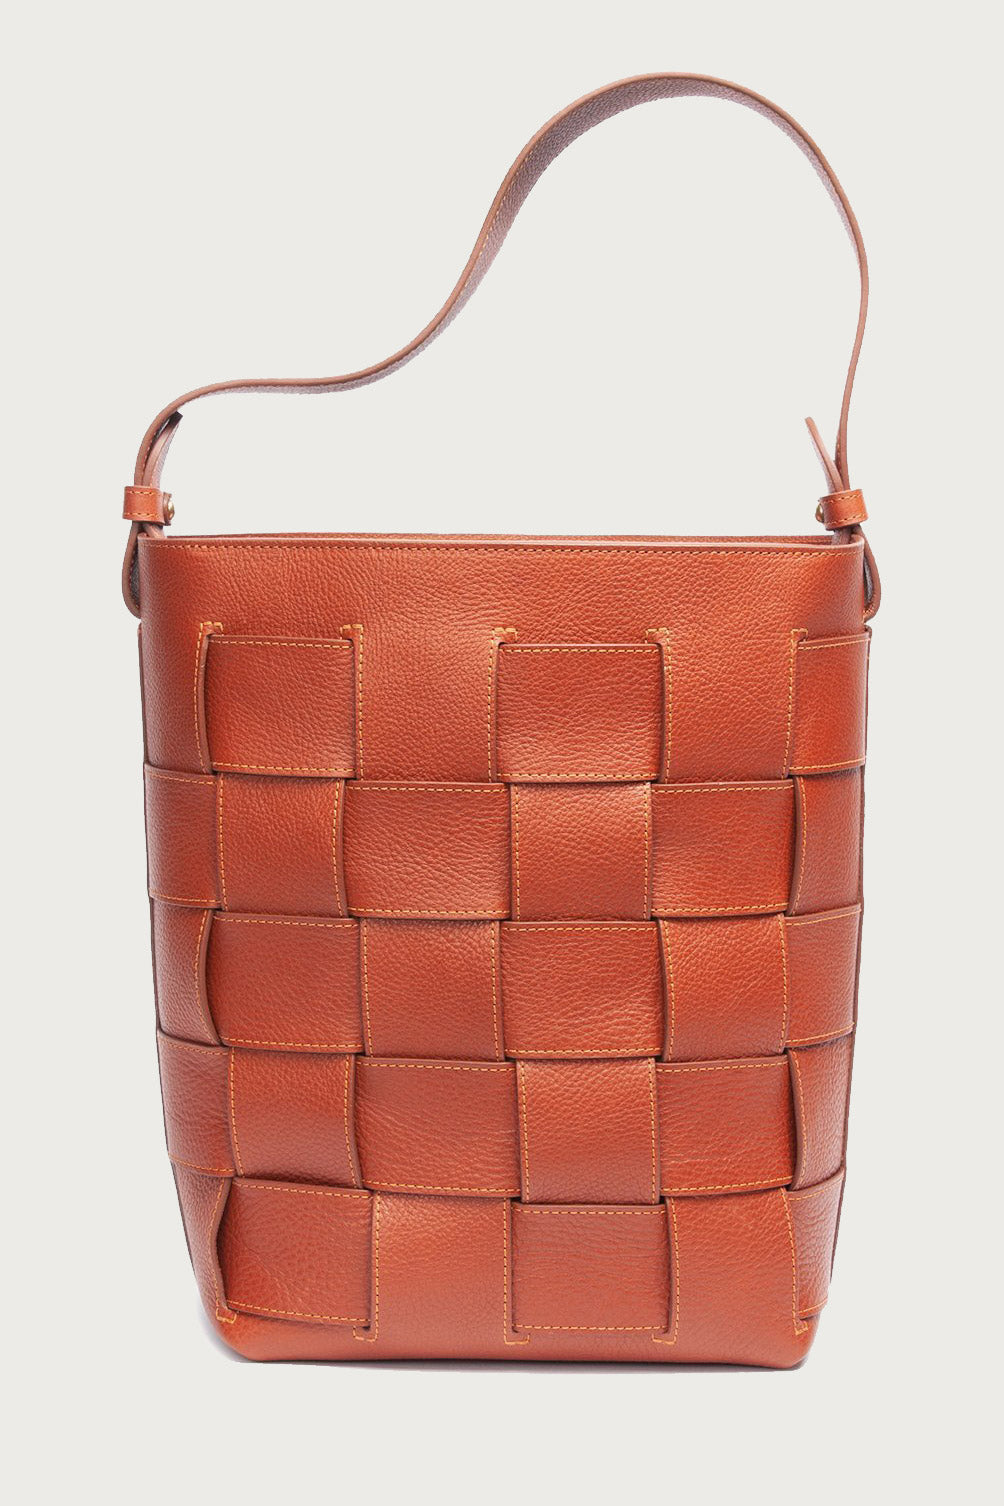 Lotuff Leather Woven Bucket Bag in Saddle Tan - Vert & Vogue